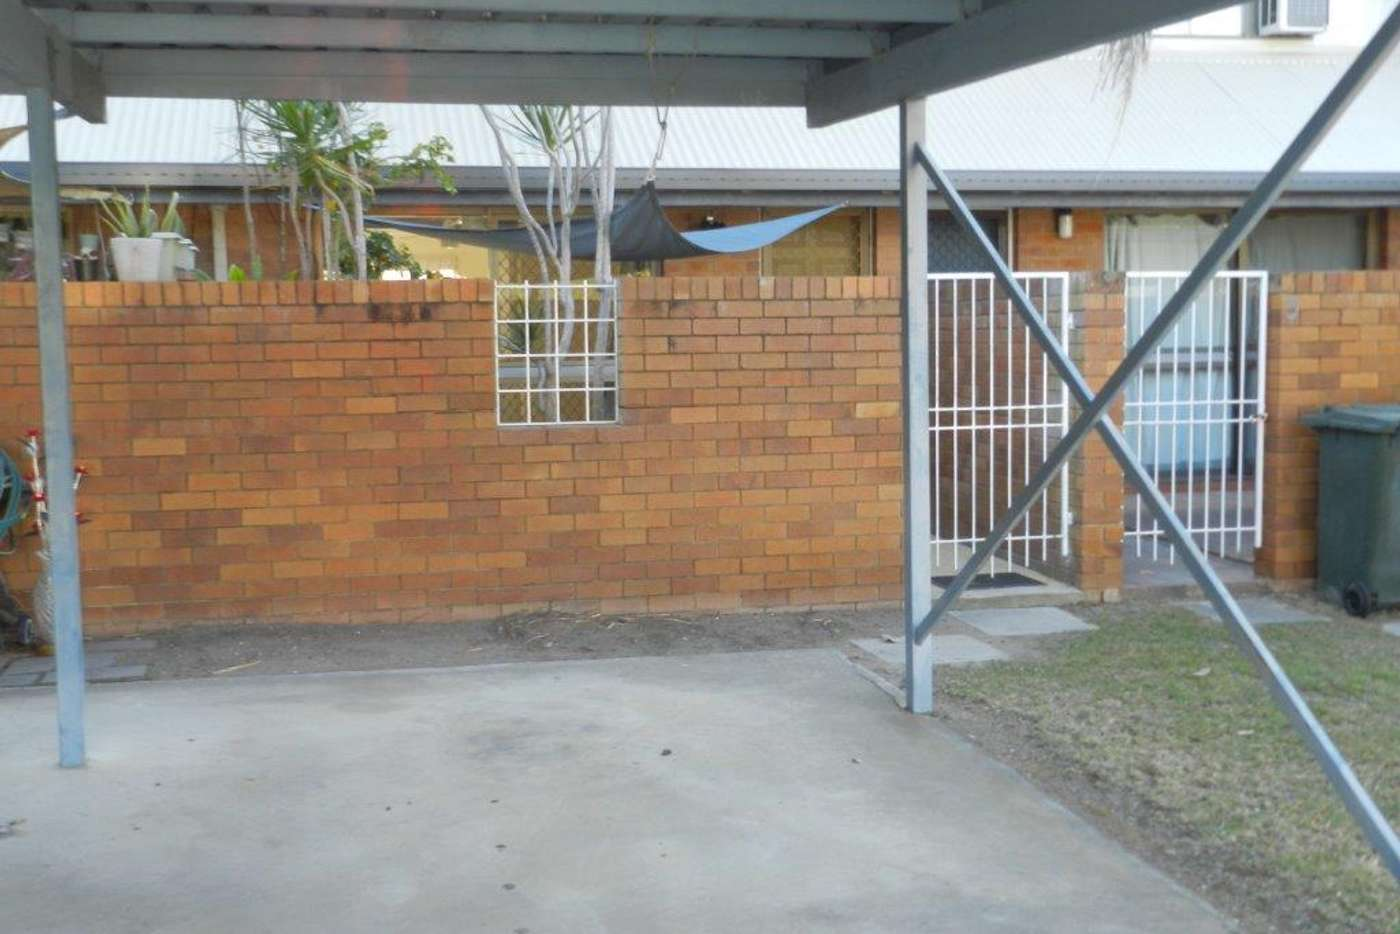 Main view of Homely unit listing, 6/5 MCCANN STREET, South Gladstone QLD 4680